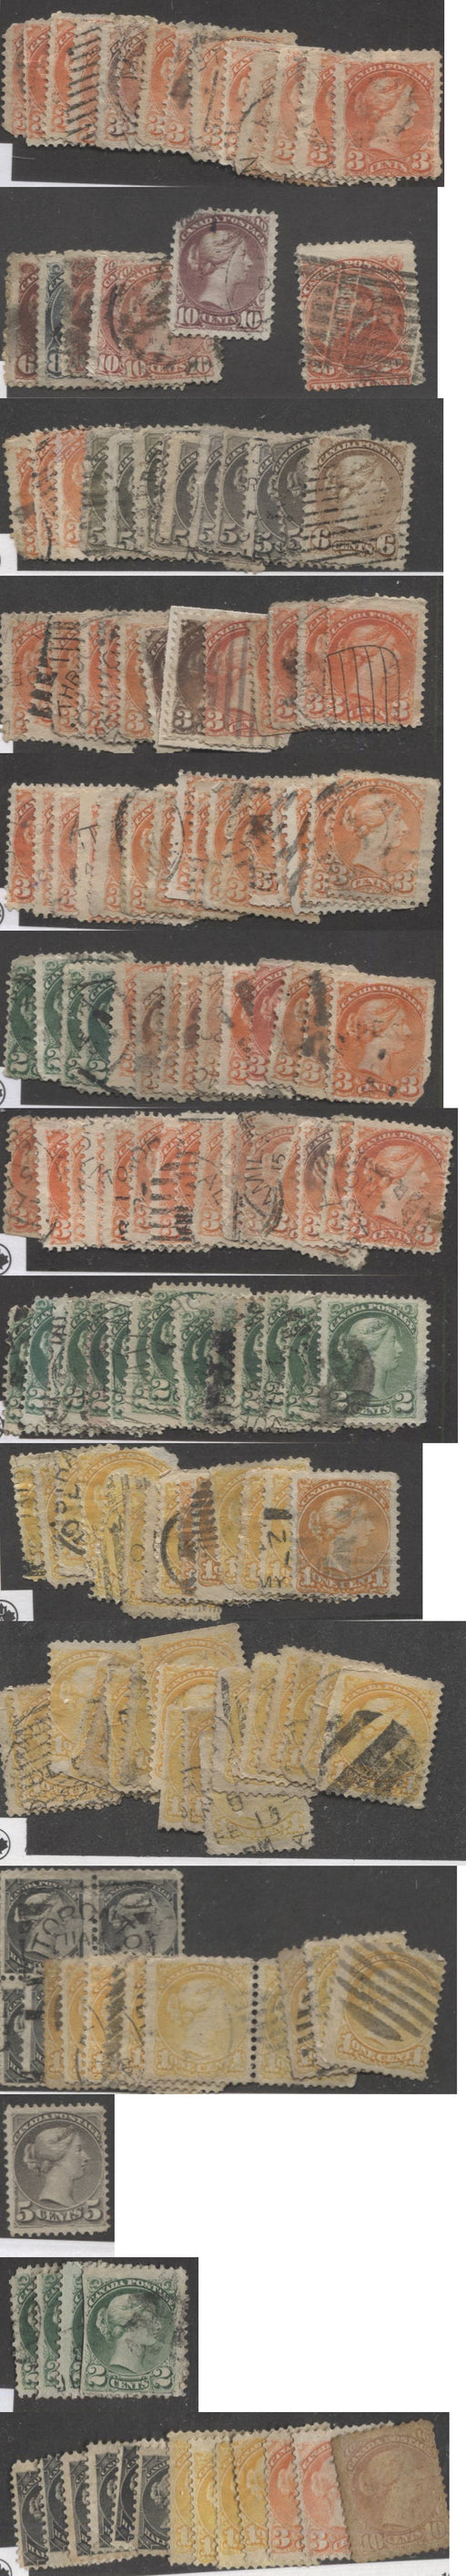 Canada #34/46 1870-1897 Small Queen Issue - A Study Lot of Mostly Damaged but Useful Stamps